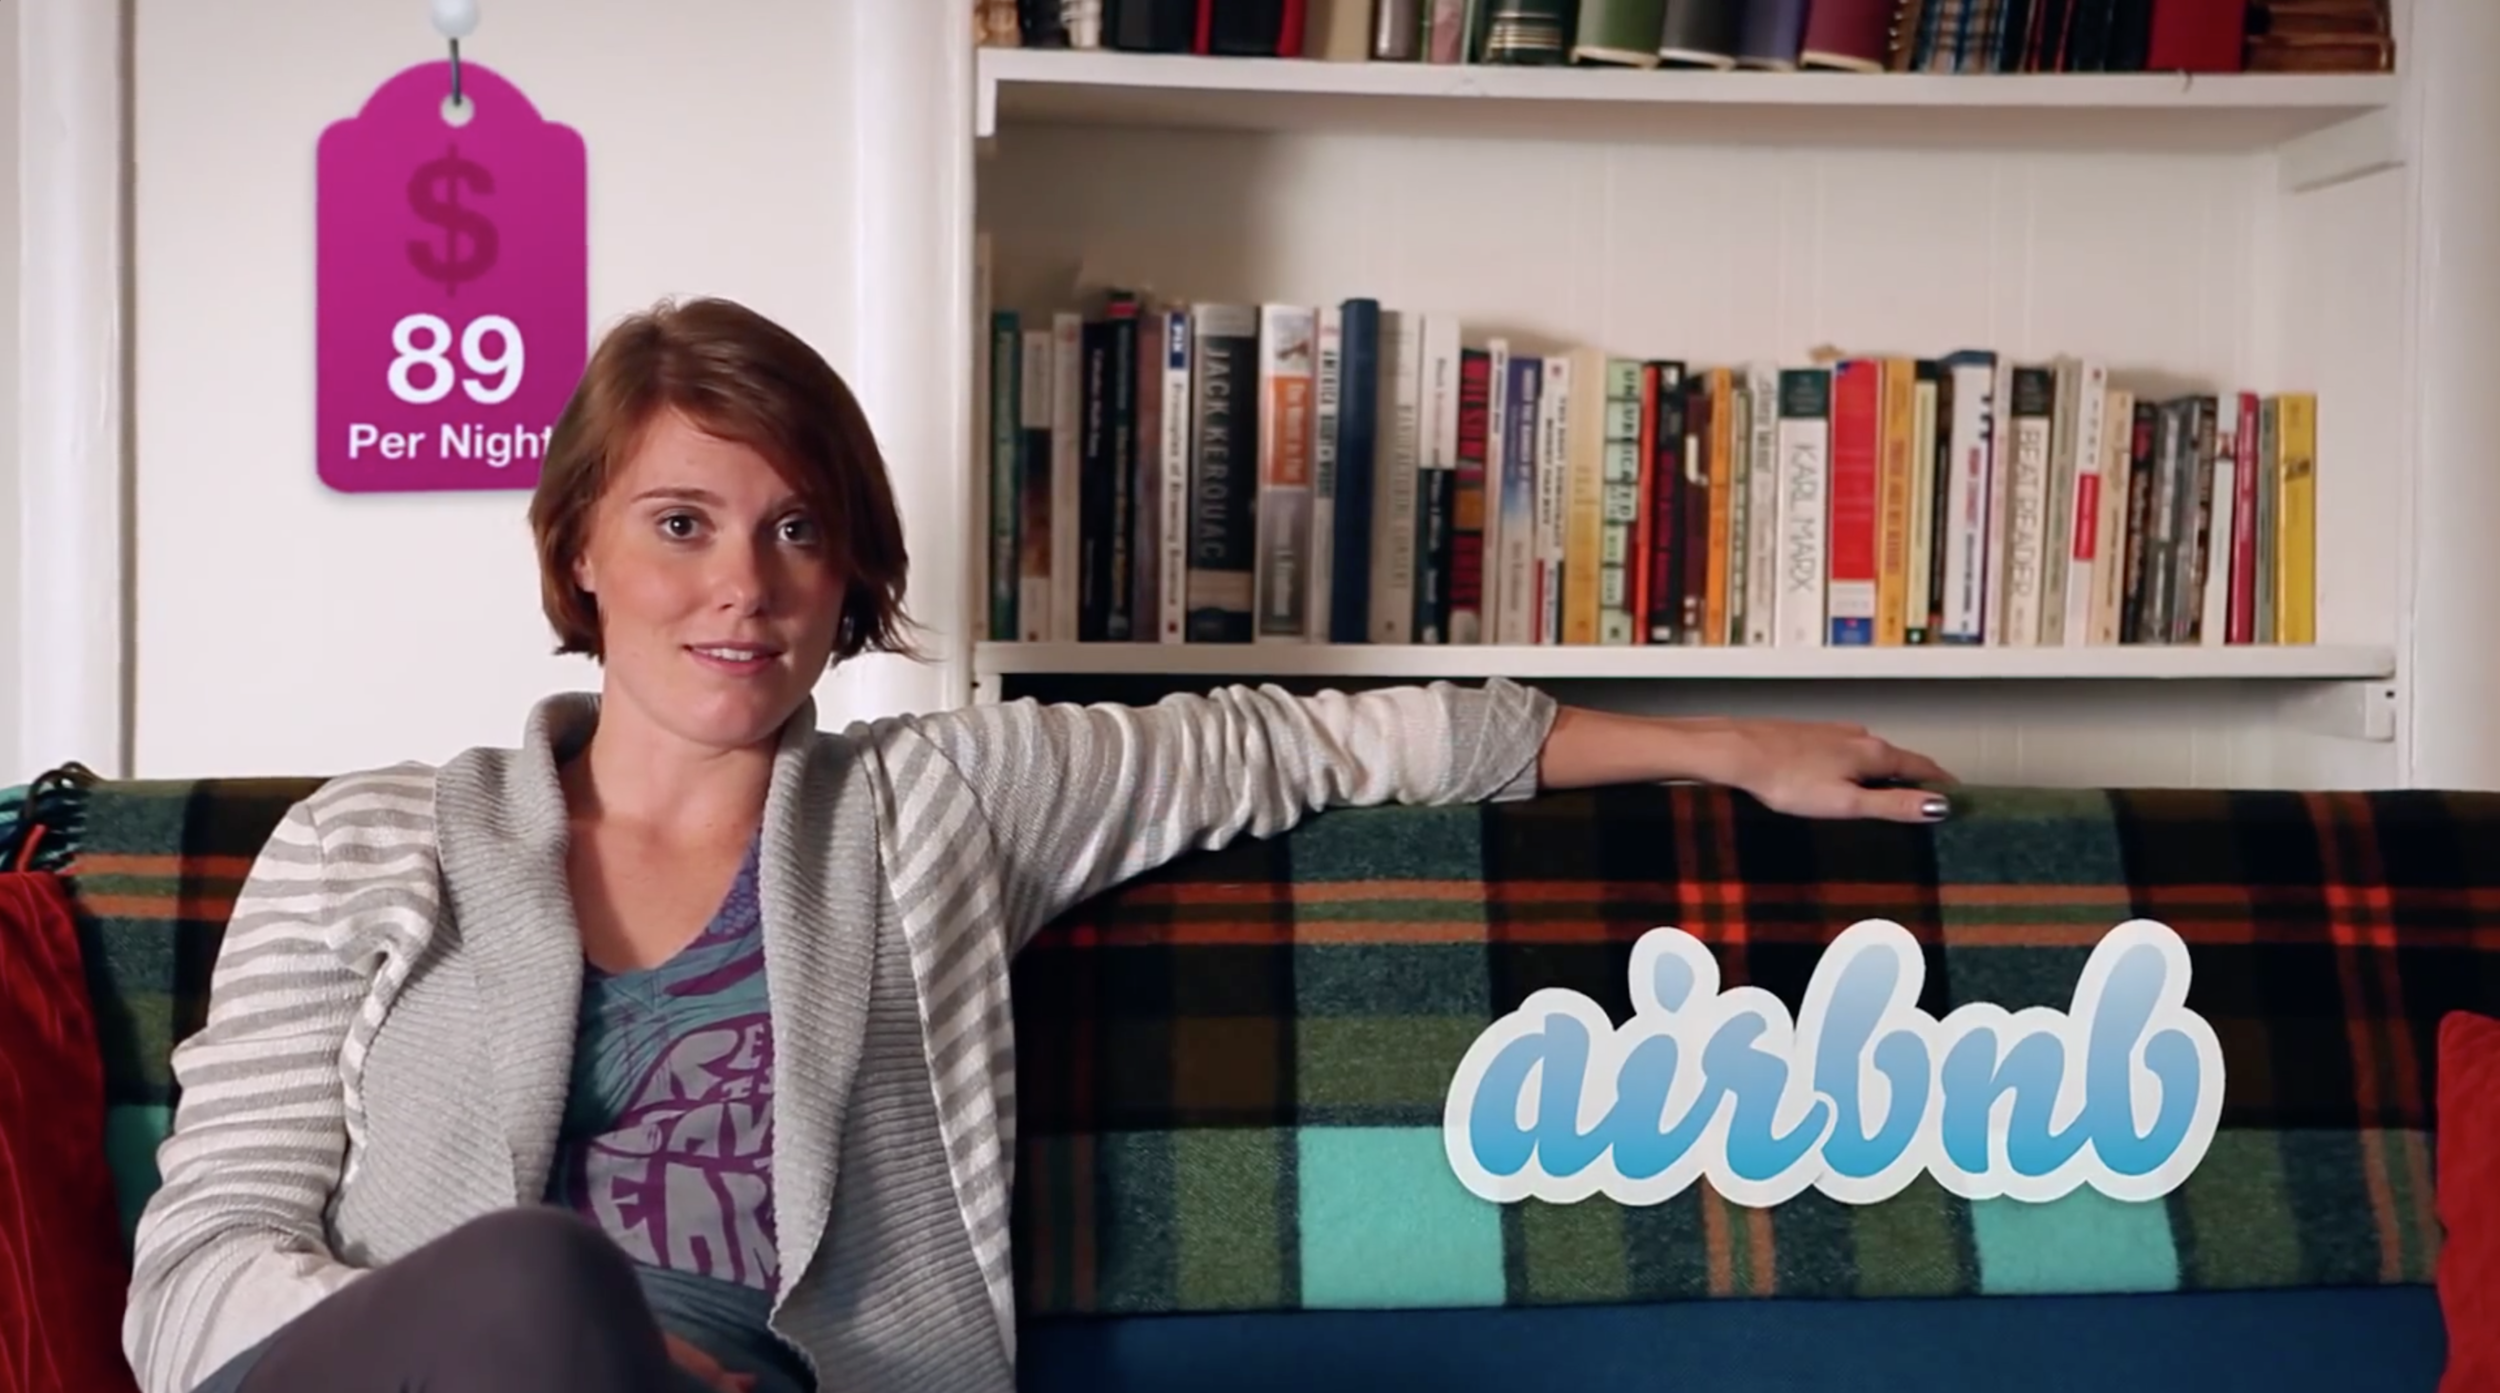 I was a creative director & spokesperson for Airbnb. -